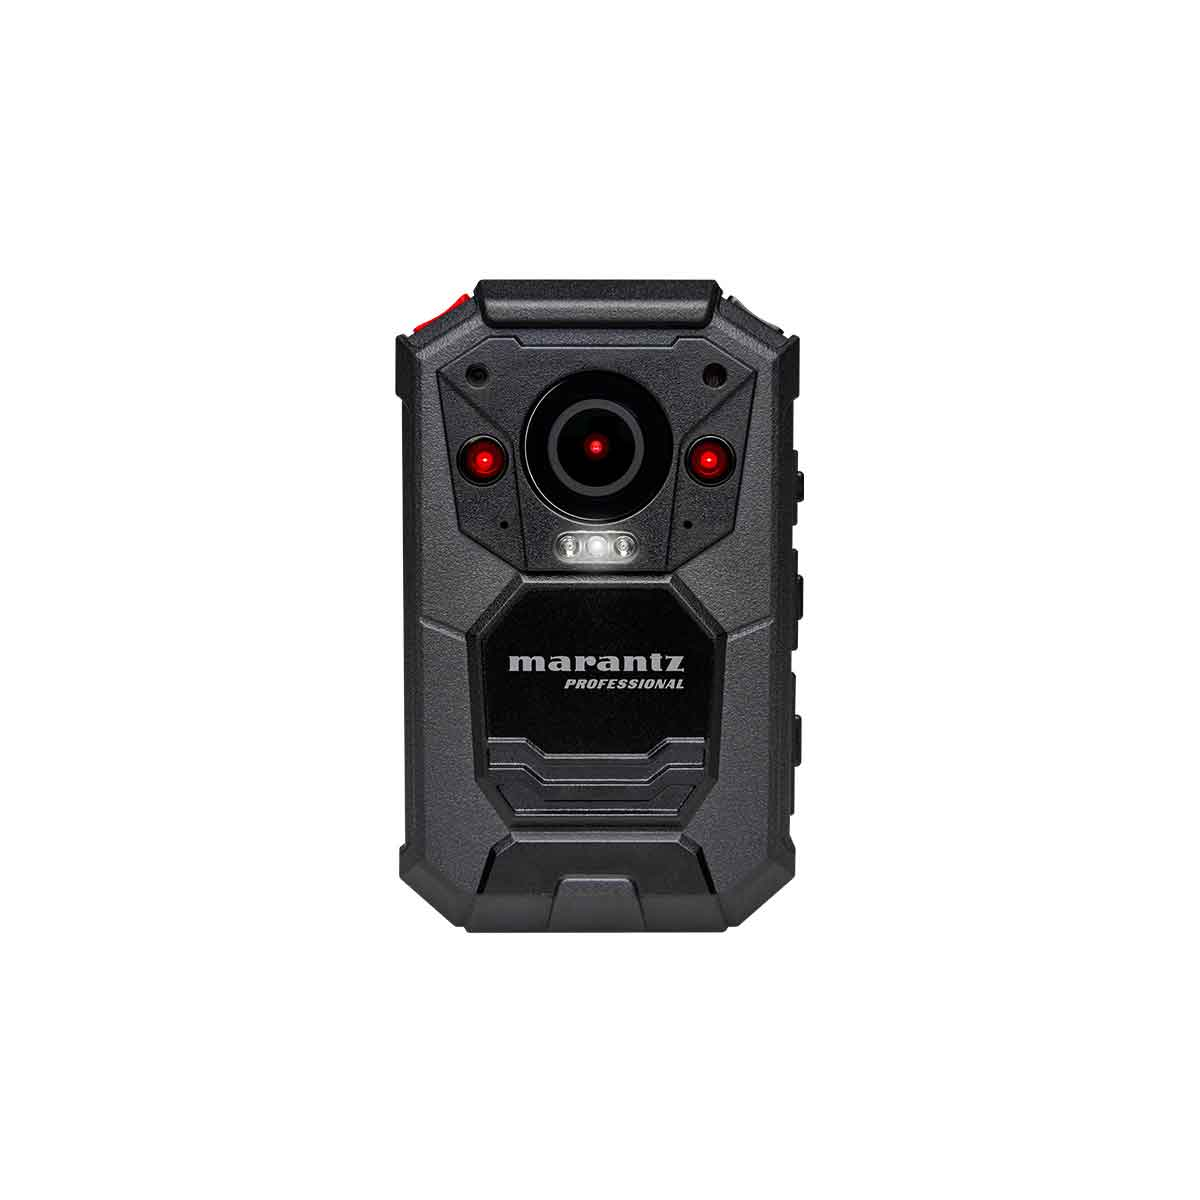 Marantz PMD-901V Wearable Video Camera with built-in GPS